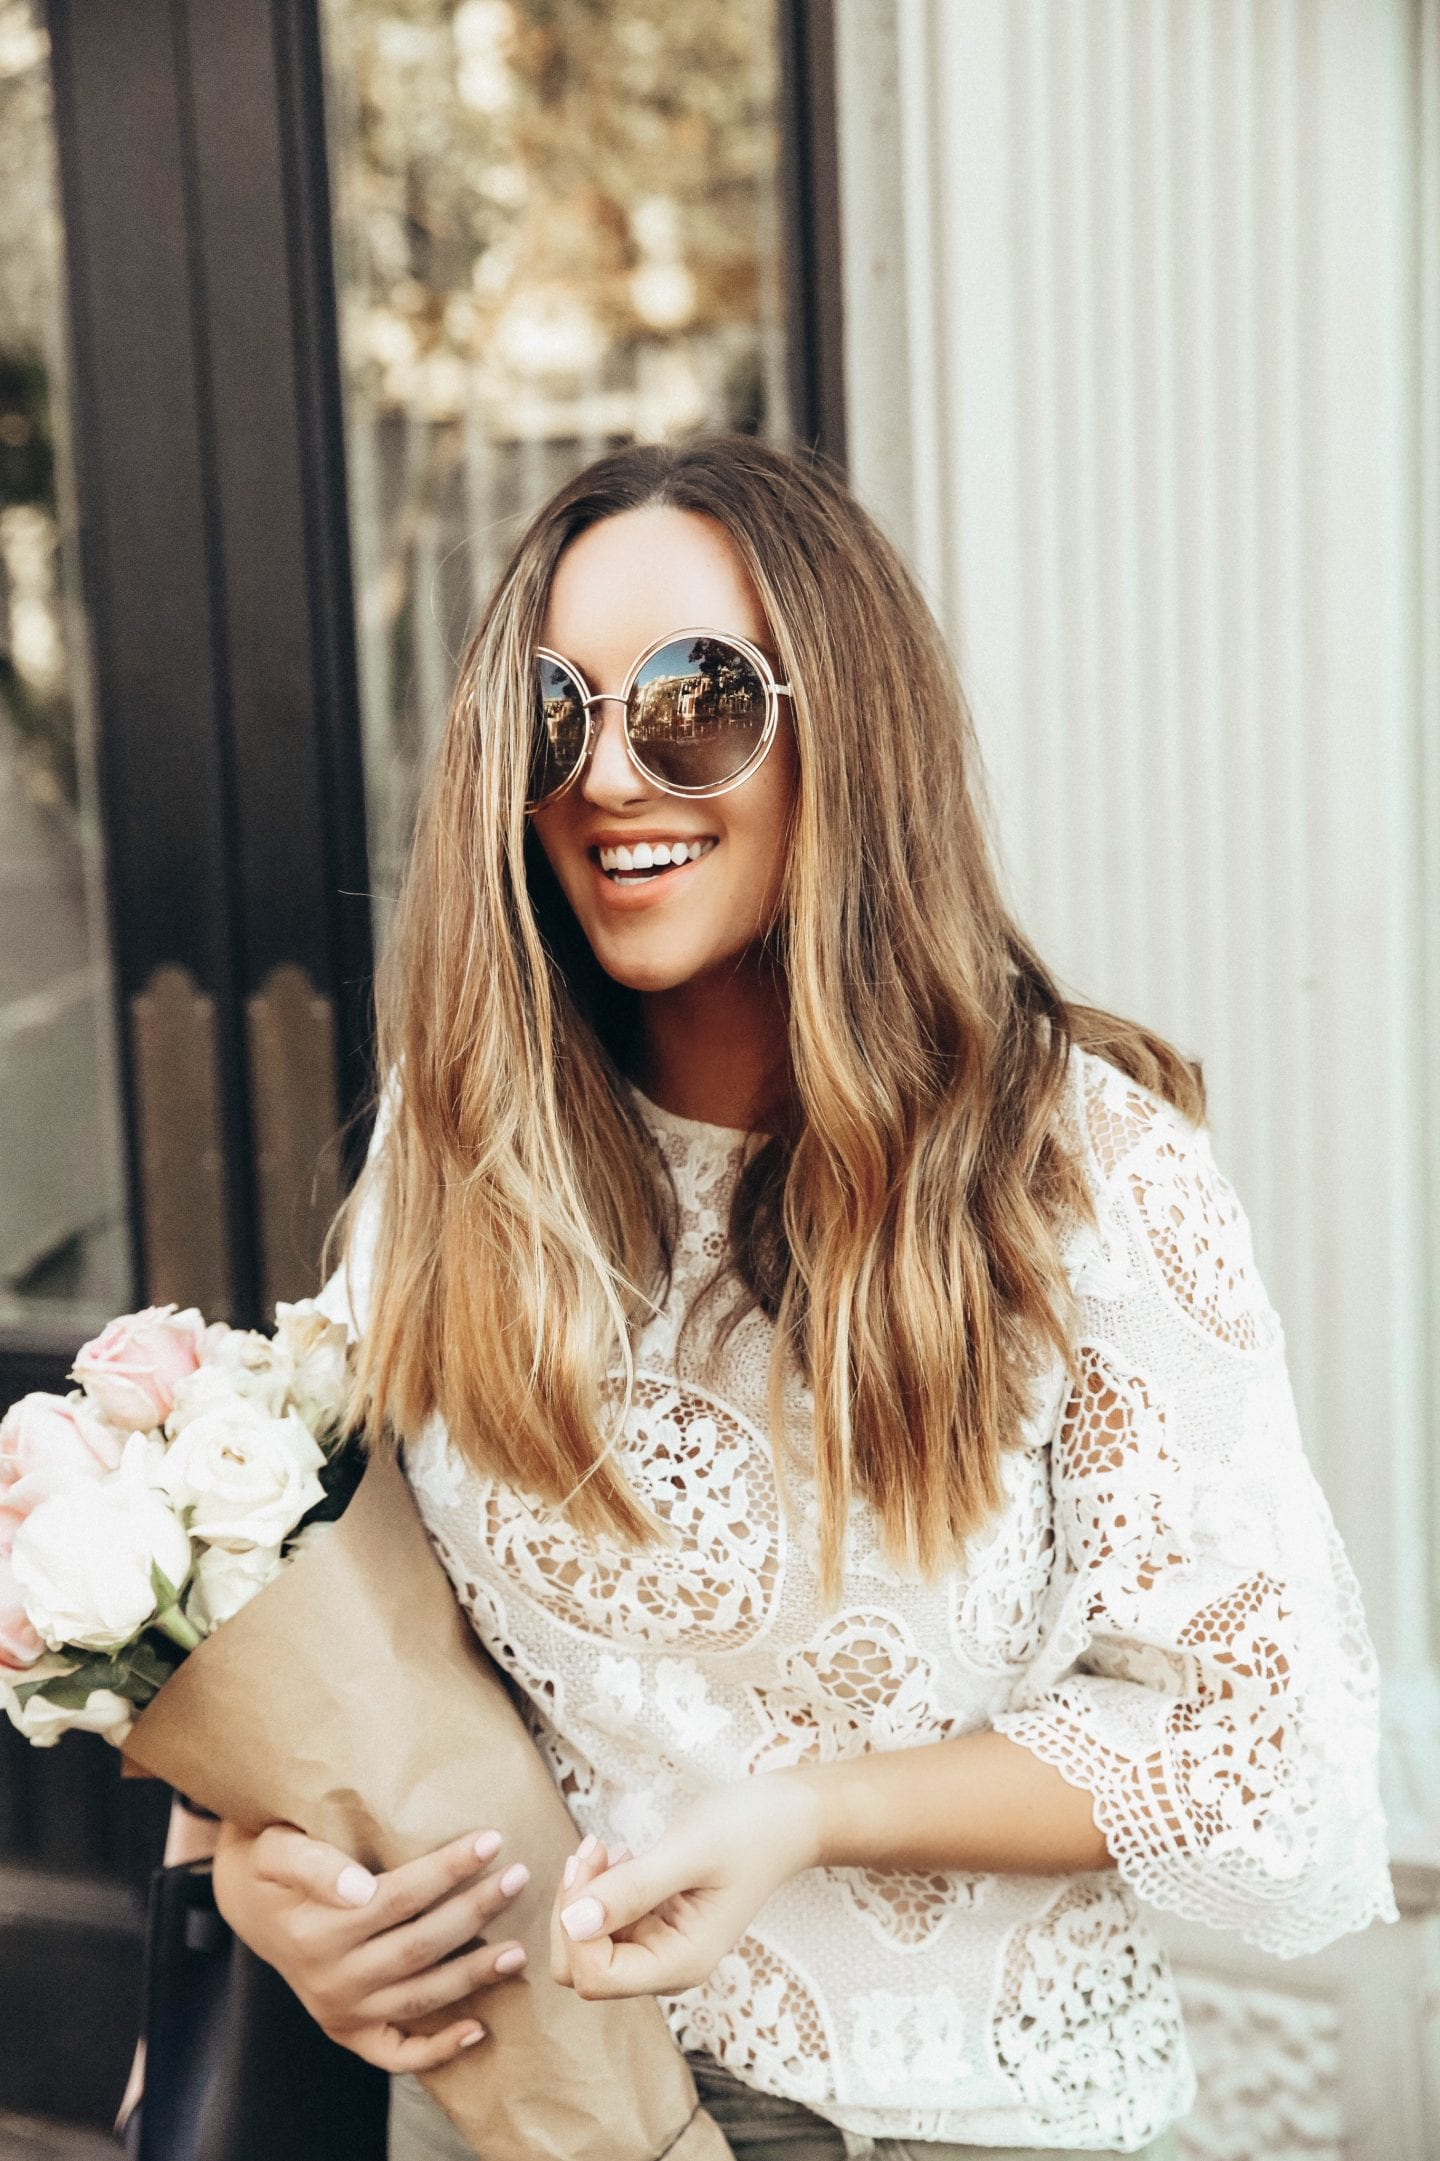 living proof hair | Living Proof Hair Products by popular San Francisco lifestyle blog, Just Add Glam: image of a woman standing outside, holding a bouquet of white and pink roses and running her fingers through her hair.